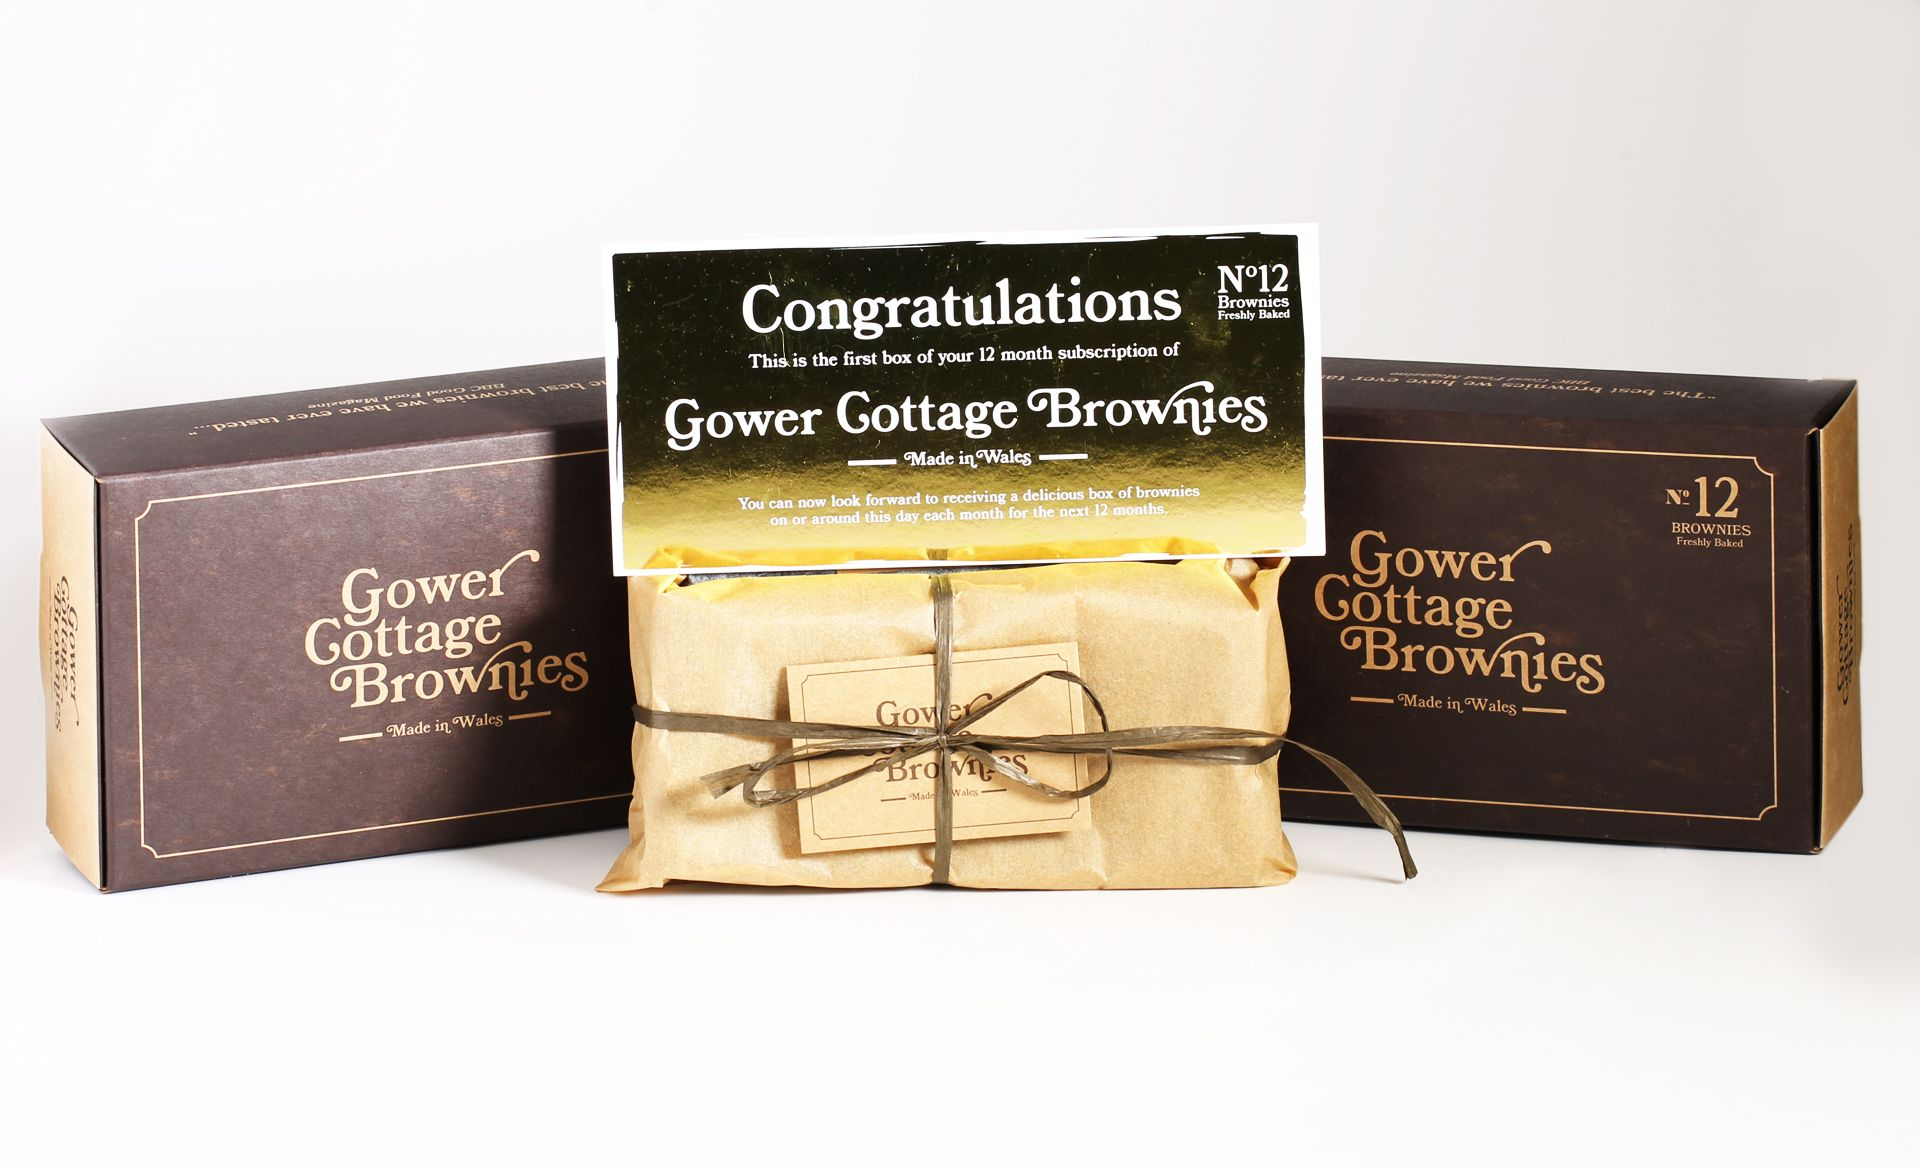 Gower Cottage Brownies (12 Month Subscription)